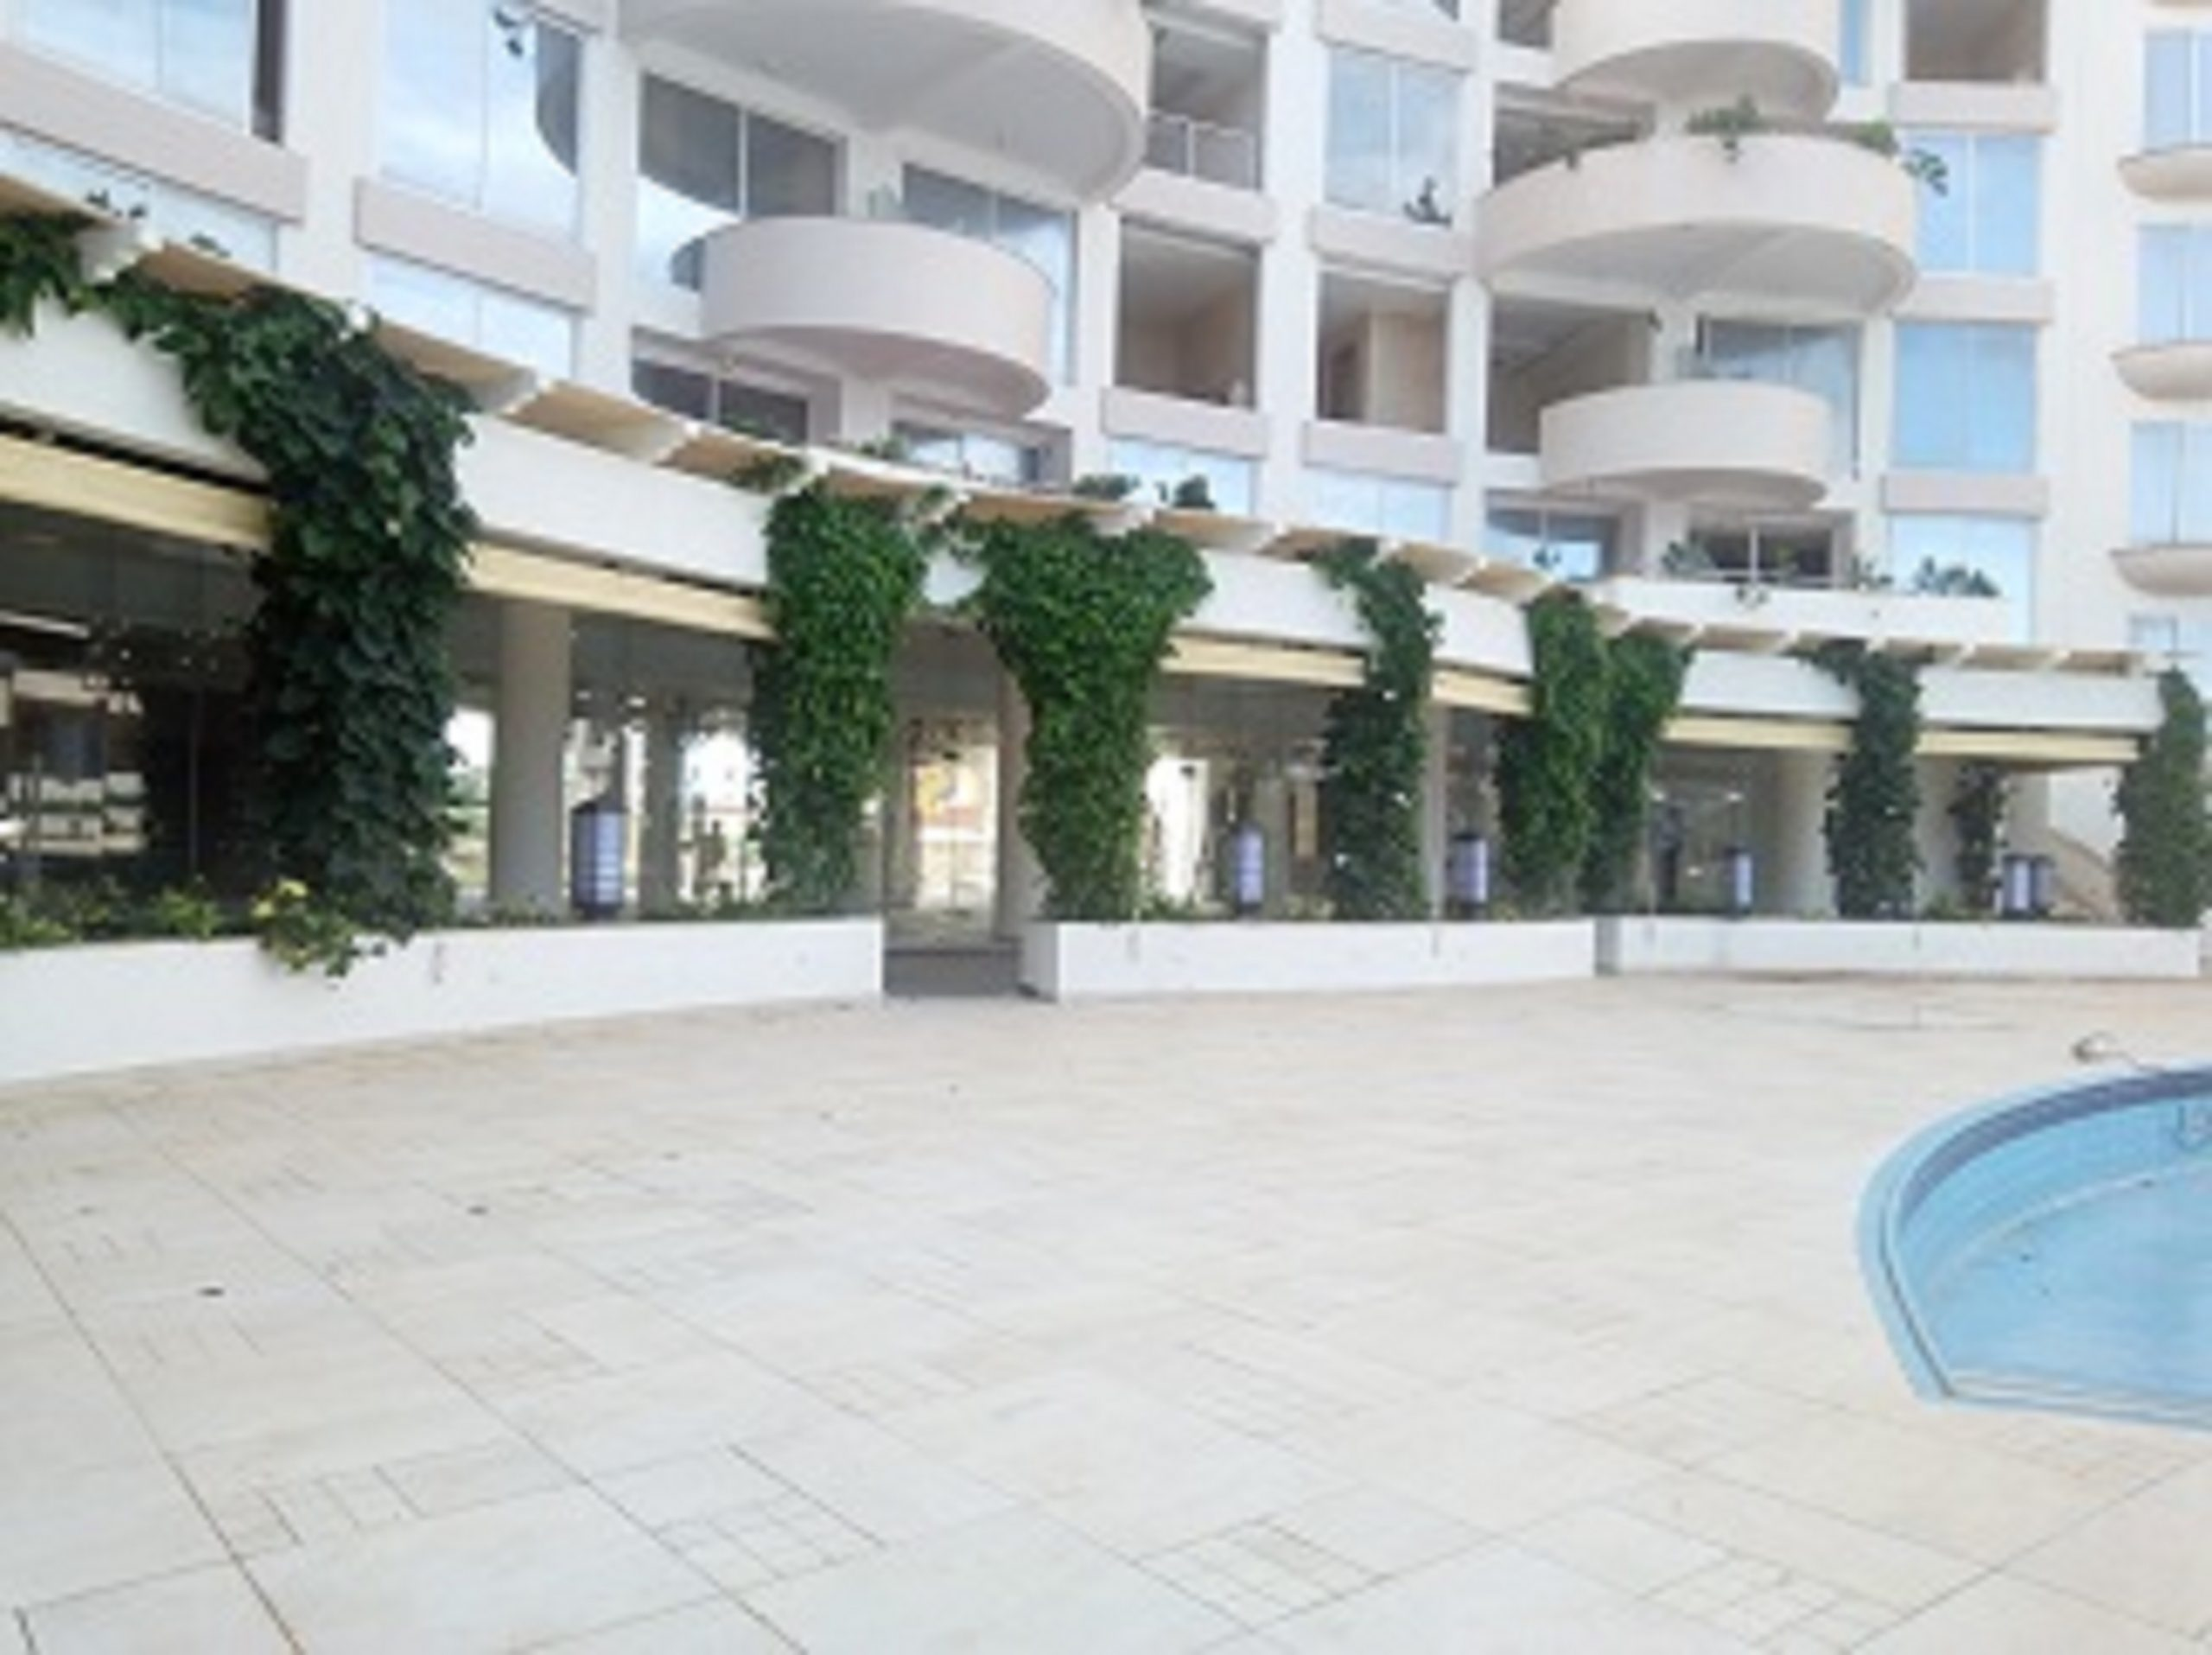 4 bedroom beach apartments for sale in Shanzu near Serena Hotel